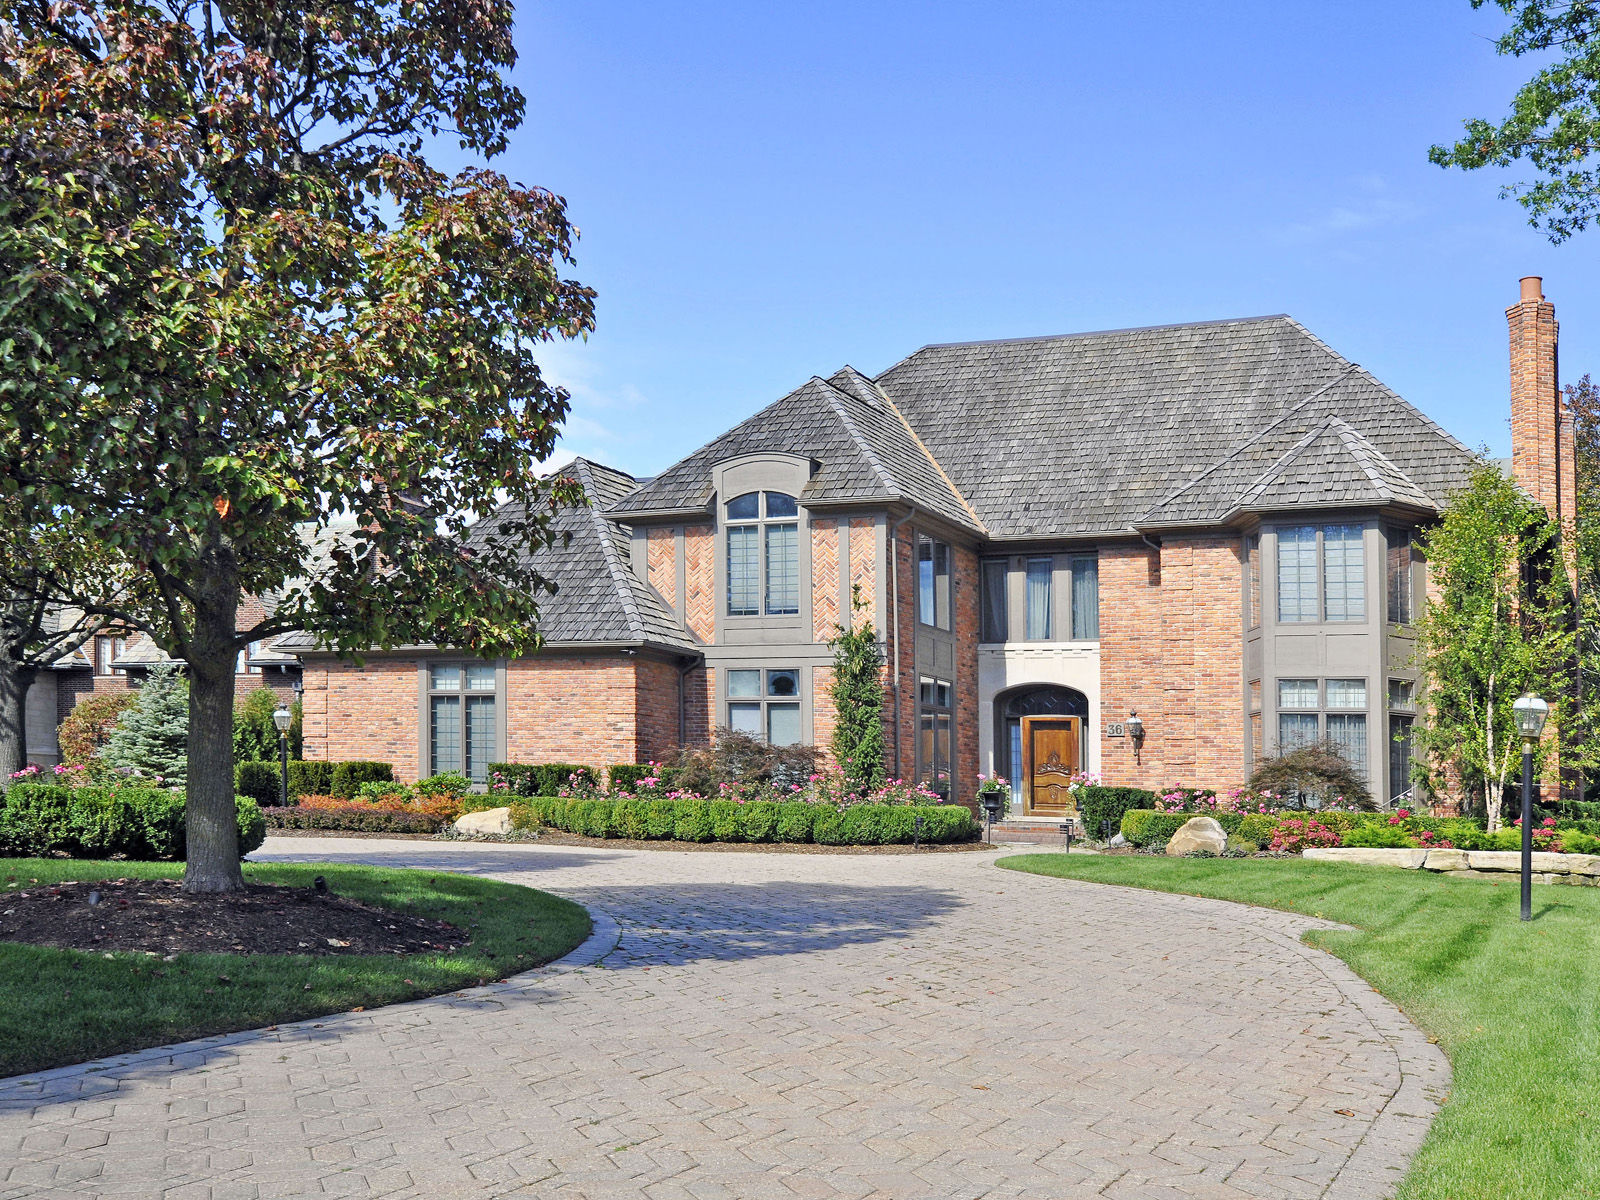 Casa Unifamiliar por un Venta en Grosse Pointe Shores 36 Oxford Road Grosse Pointe Shores, Michigan 48236 Estados Unidos